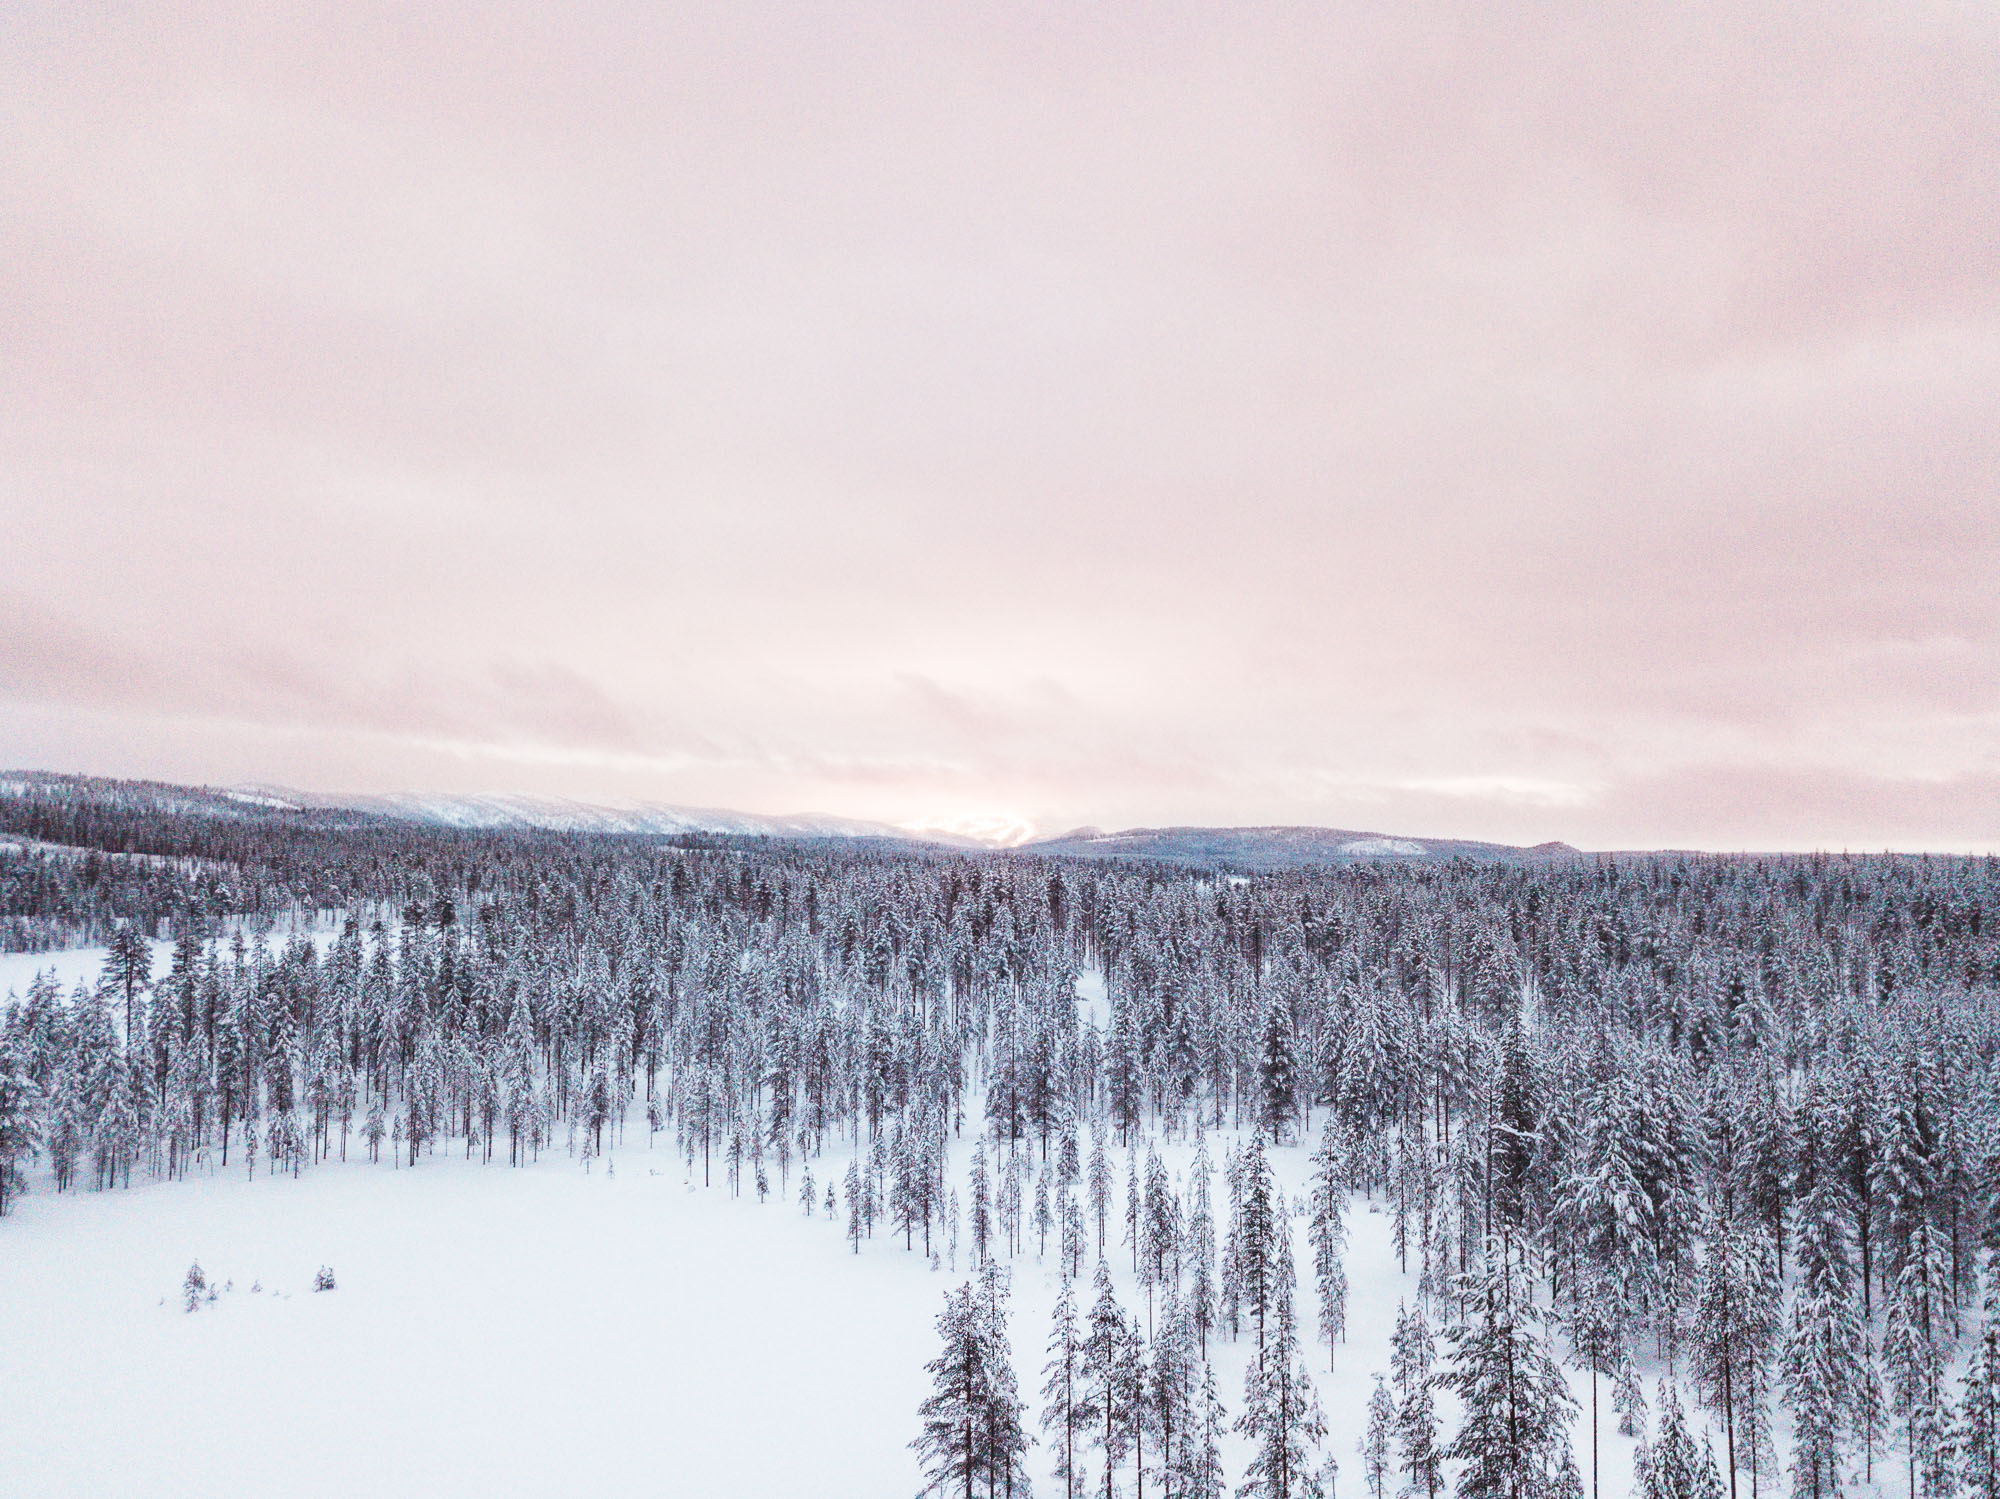 Snow-covered trees and mountains during sunset in Finland